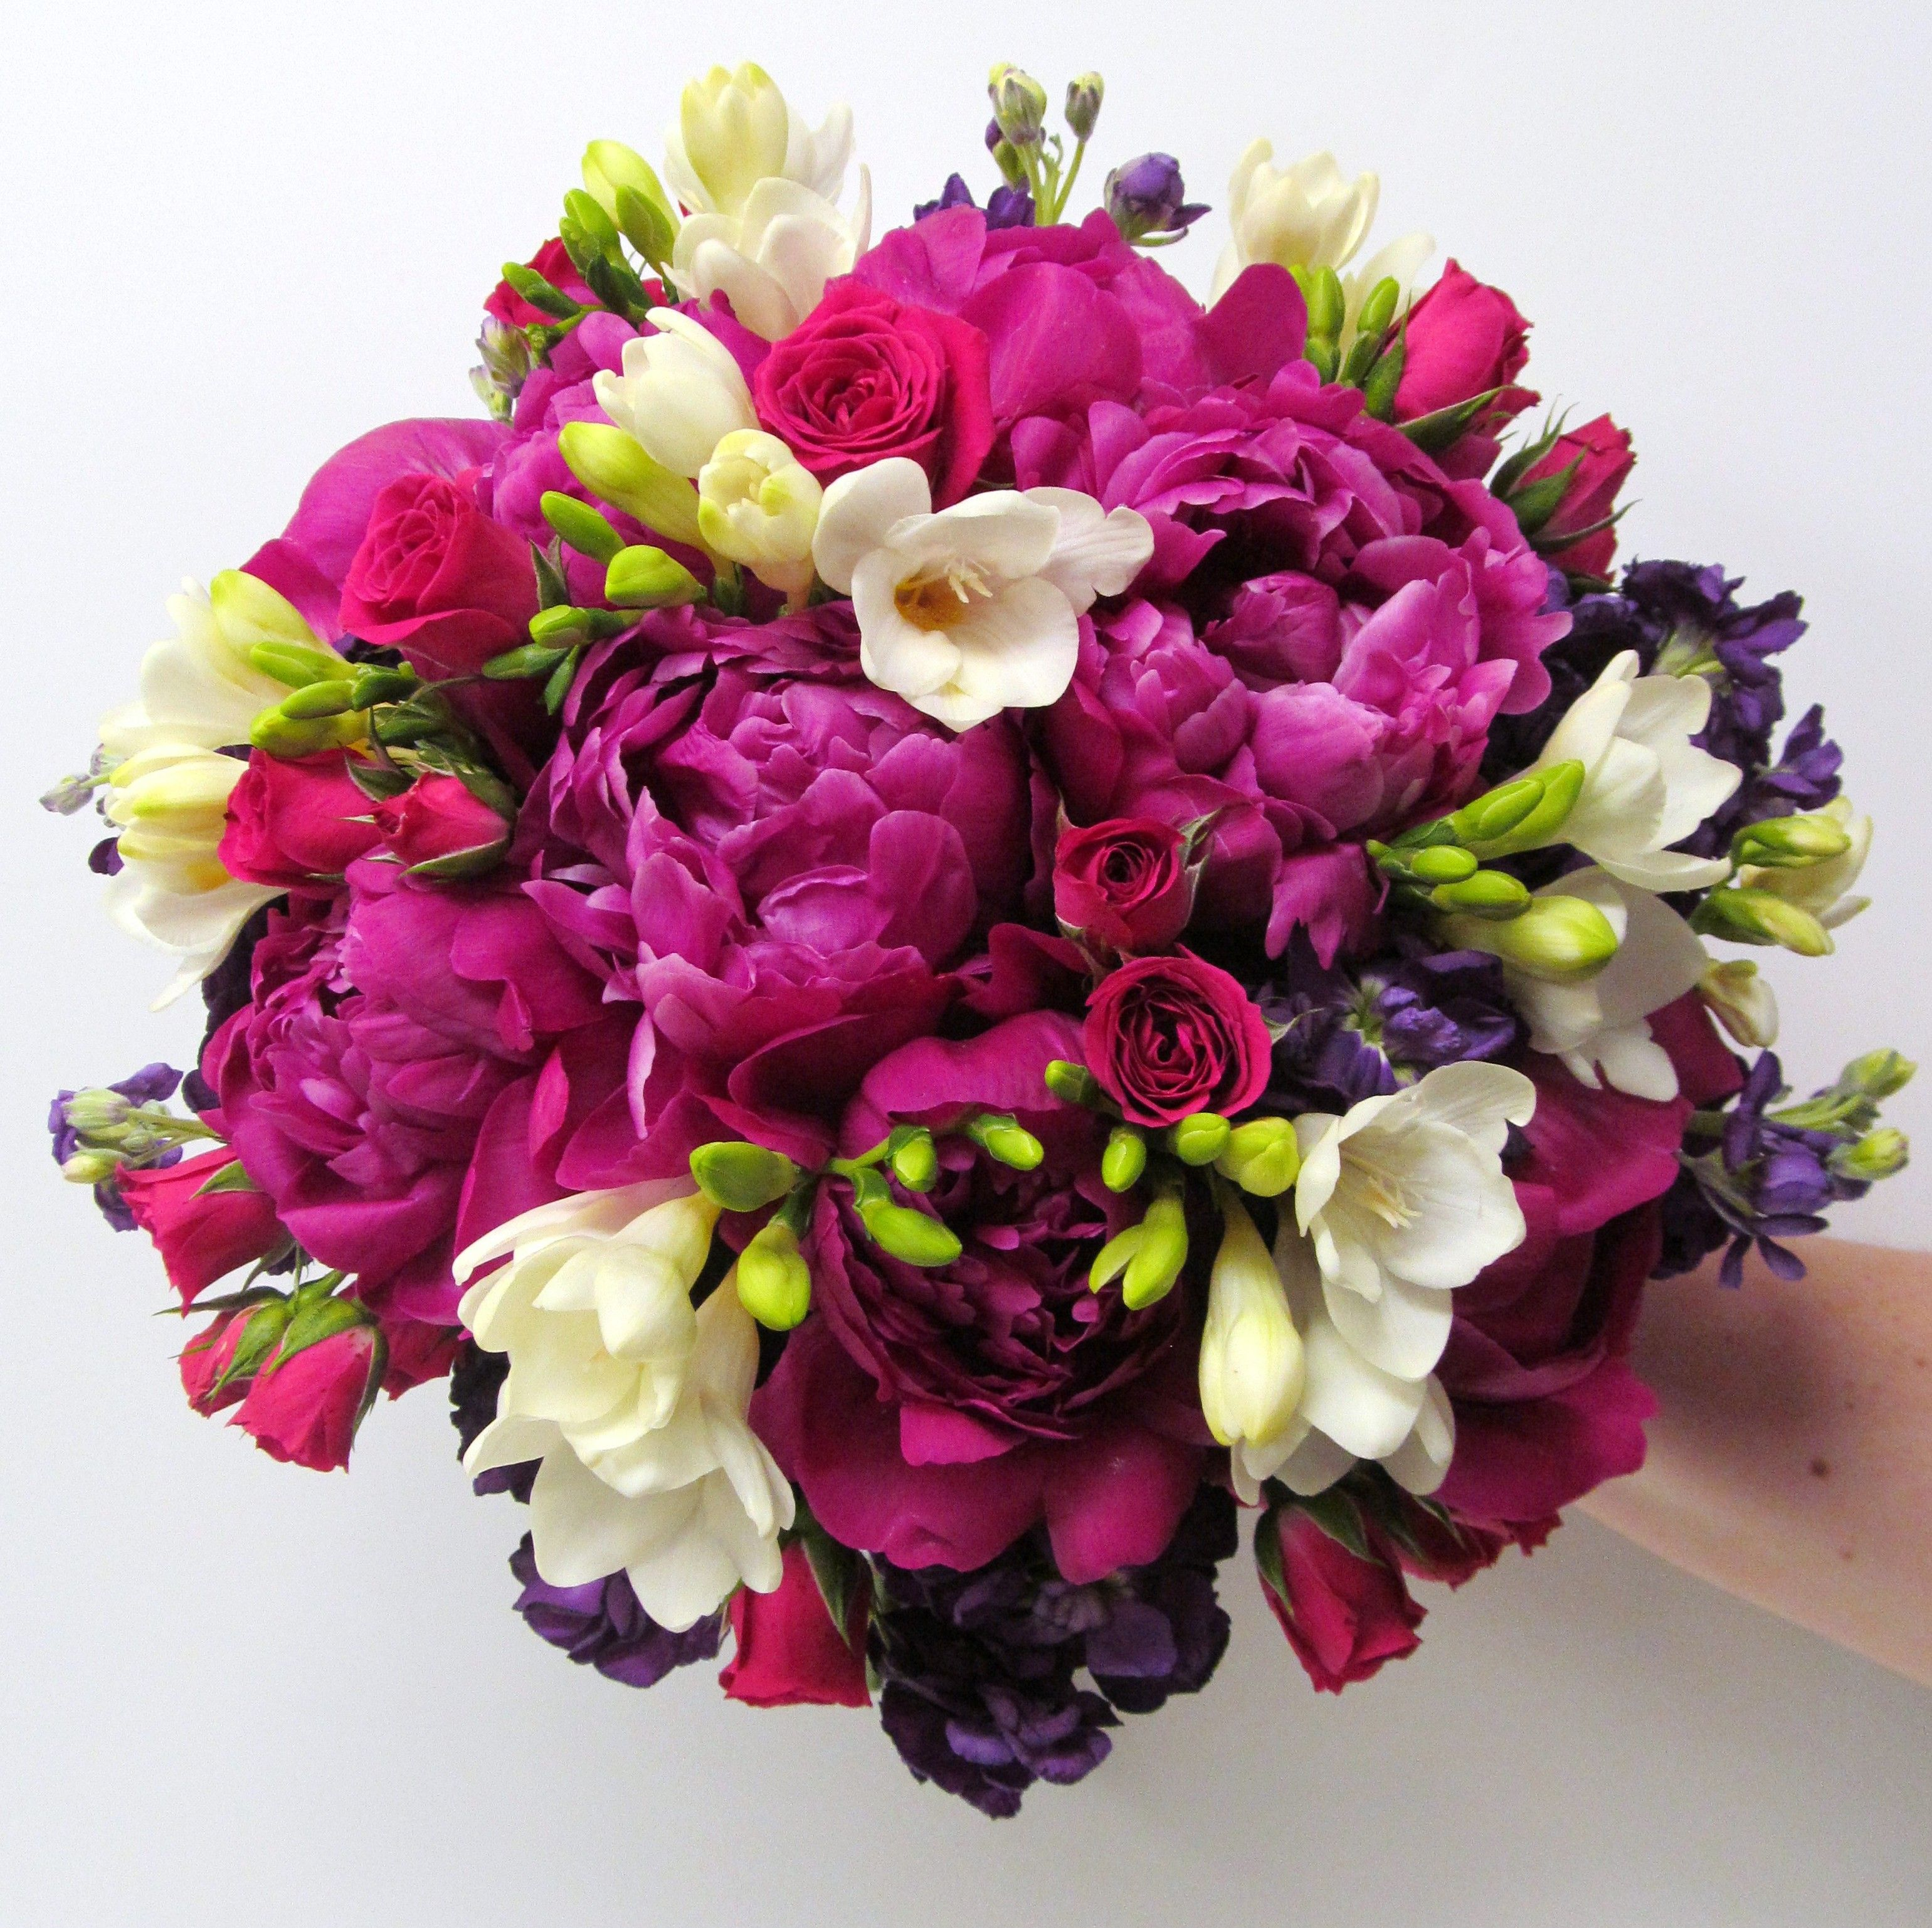 Fuchsia Bridal Bouquet By Lipinoga Florist Peonies And Spray Roses With An Accent Of Plum White Flowers Is A Stunning Combination To Carry When